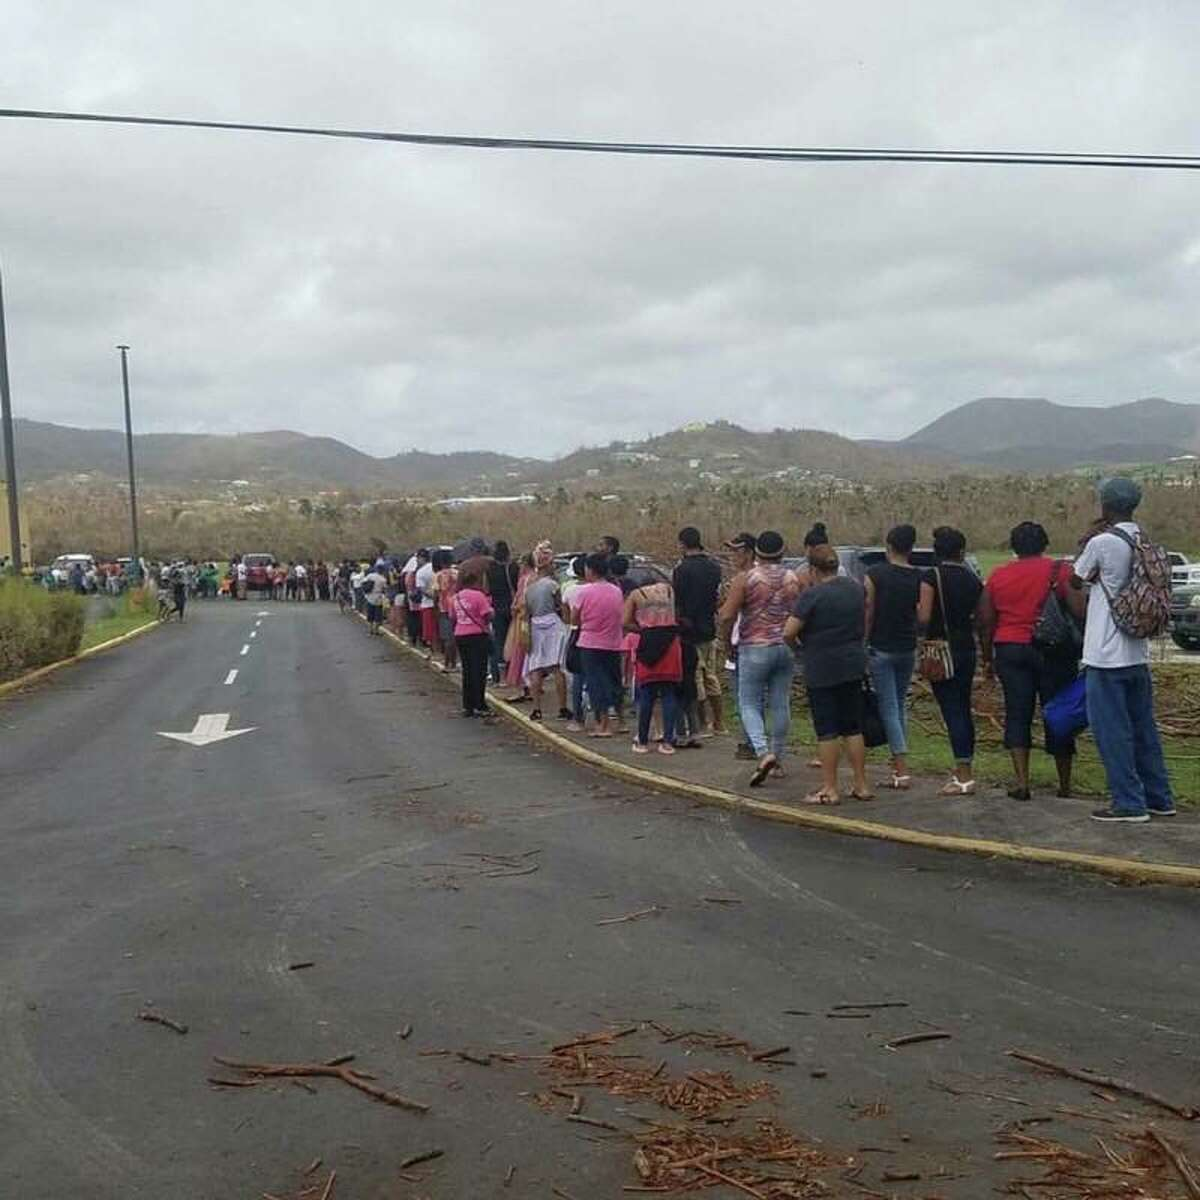 A photo of people standing in line for groceries on Sept. 26, 2017, on St. Croix in the U.S. Virgin Islands after Hurricane Maria hit a week before. Glens Falls resident Rich Morin took the picture while he was standing in line. Morin didn't lose his house, but has lived since then with no electricity or water. (Courtesy Rich Morin)